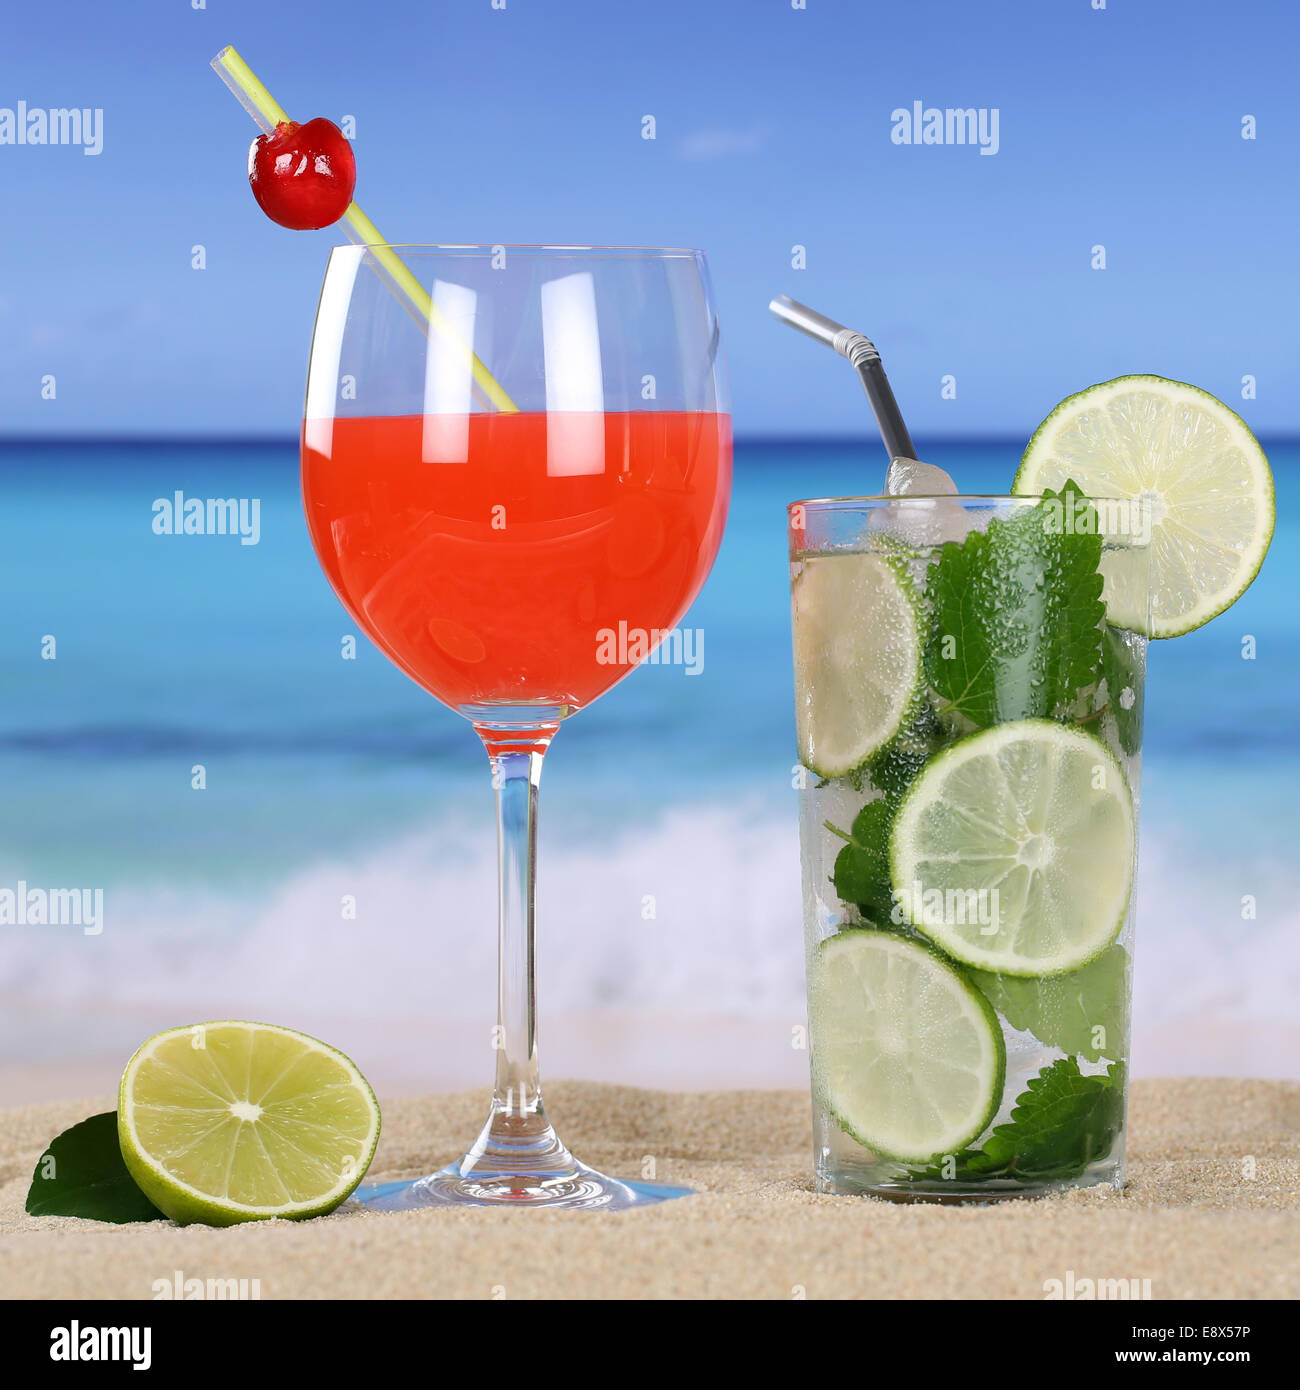 Cocktails and cold drinks on the beach with sand and sea - Stock Image